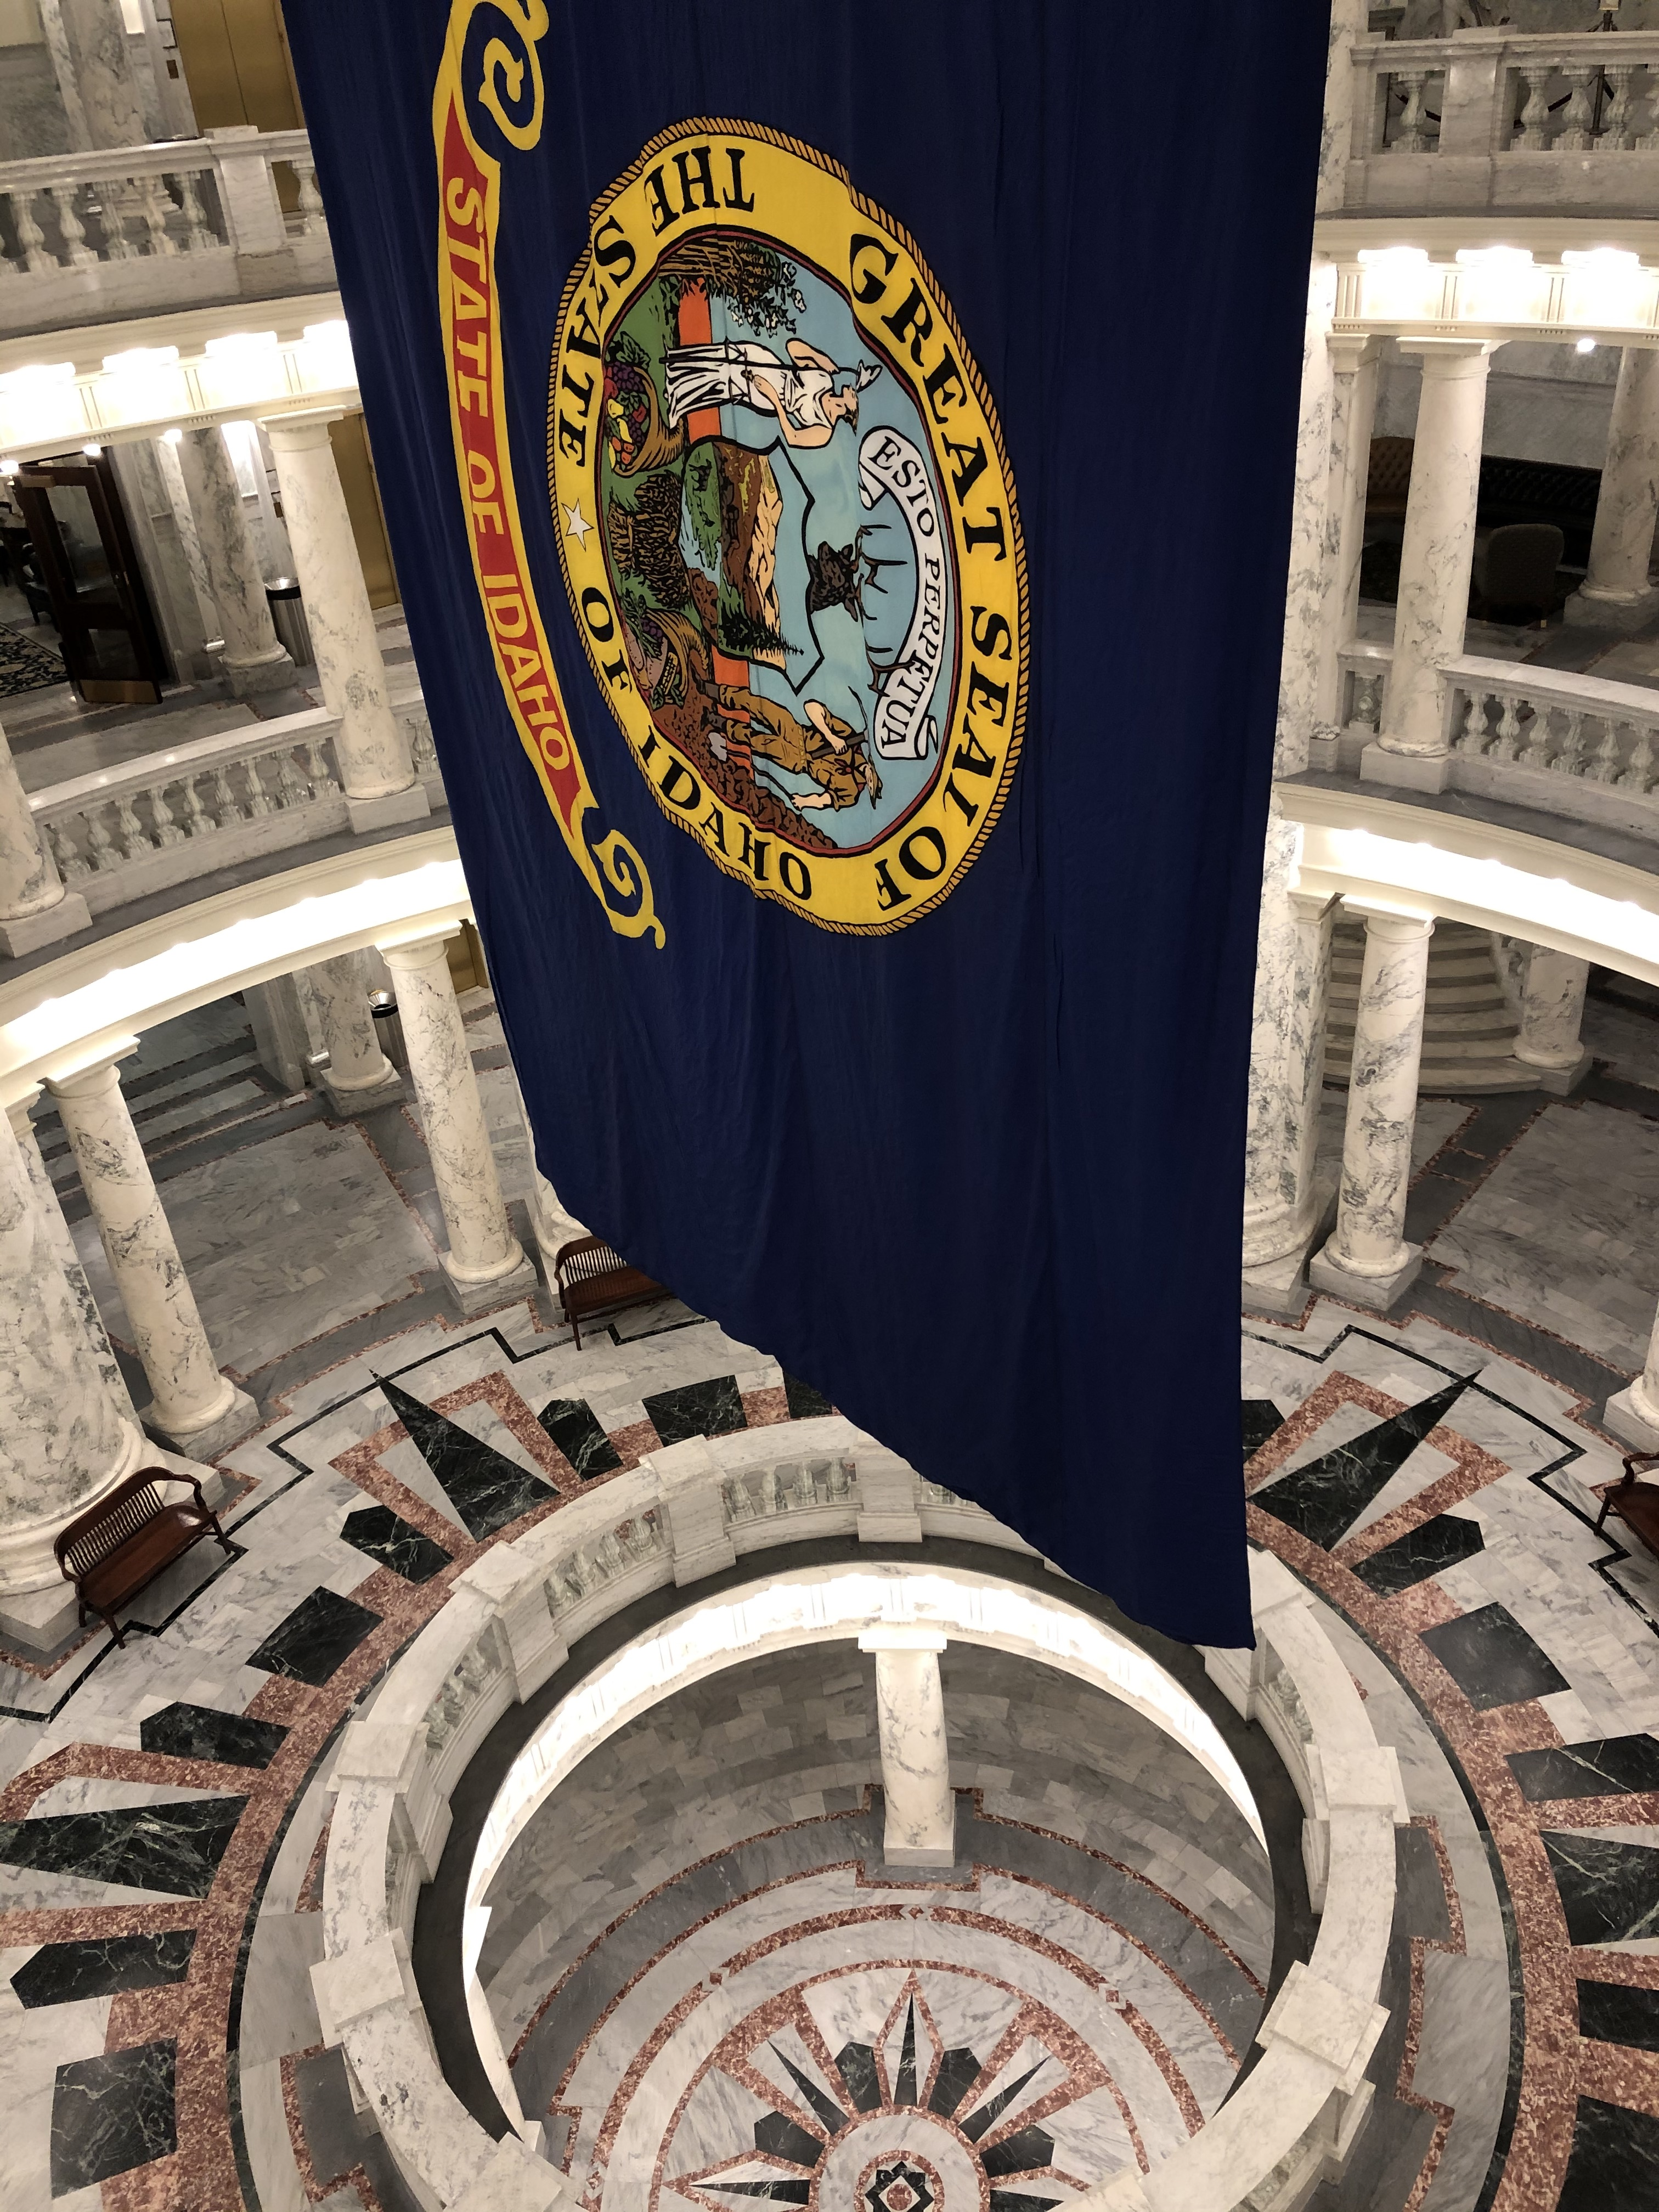 Governor's State of the State Address: Highlighting County Issues